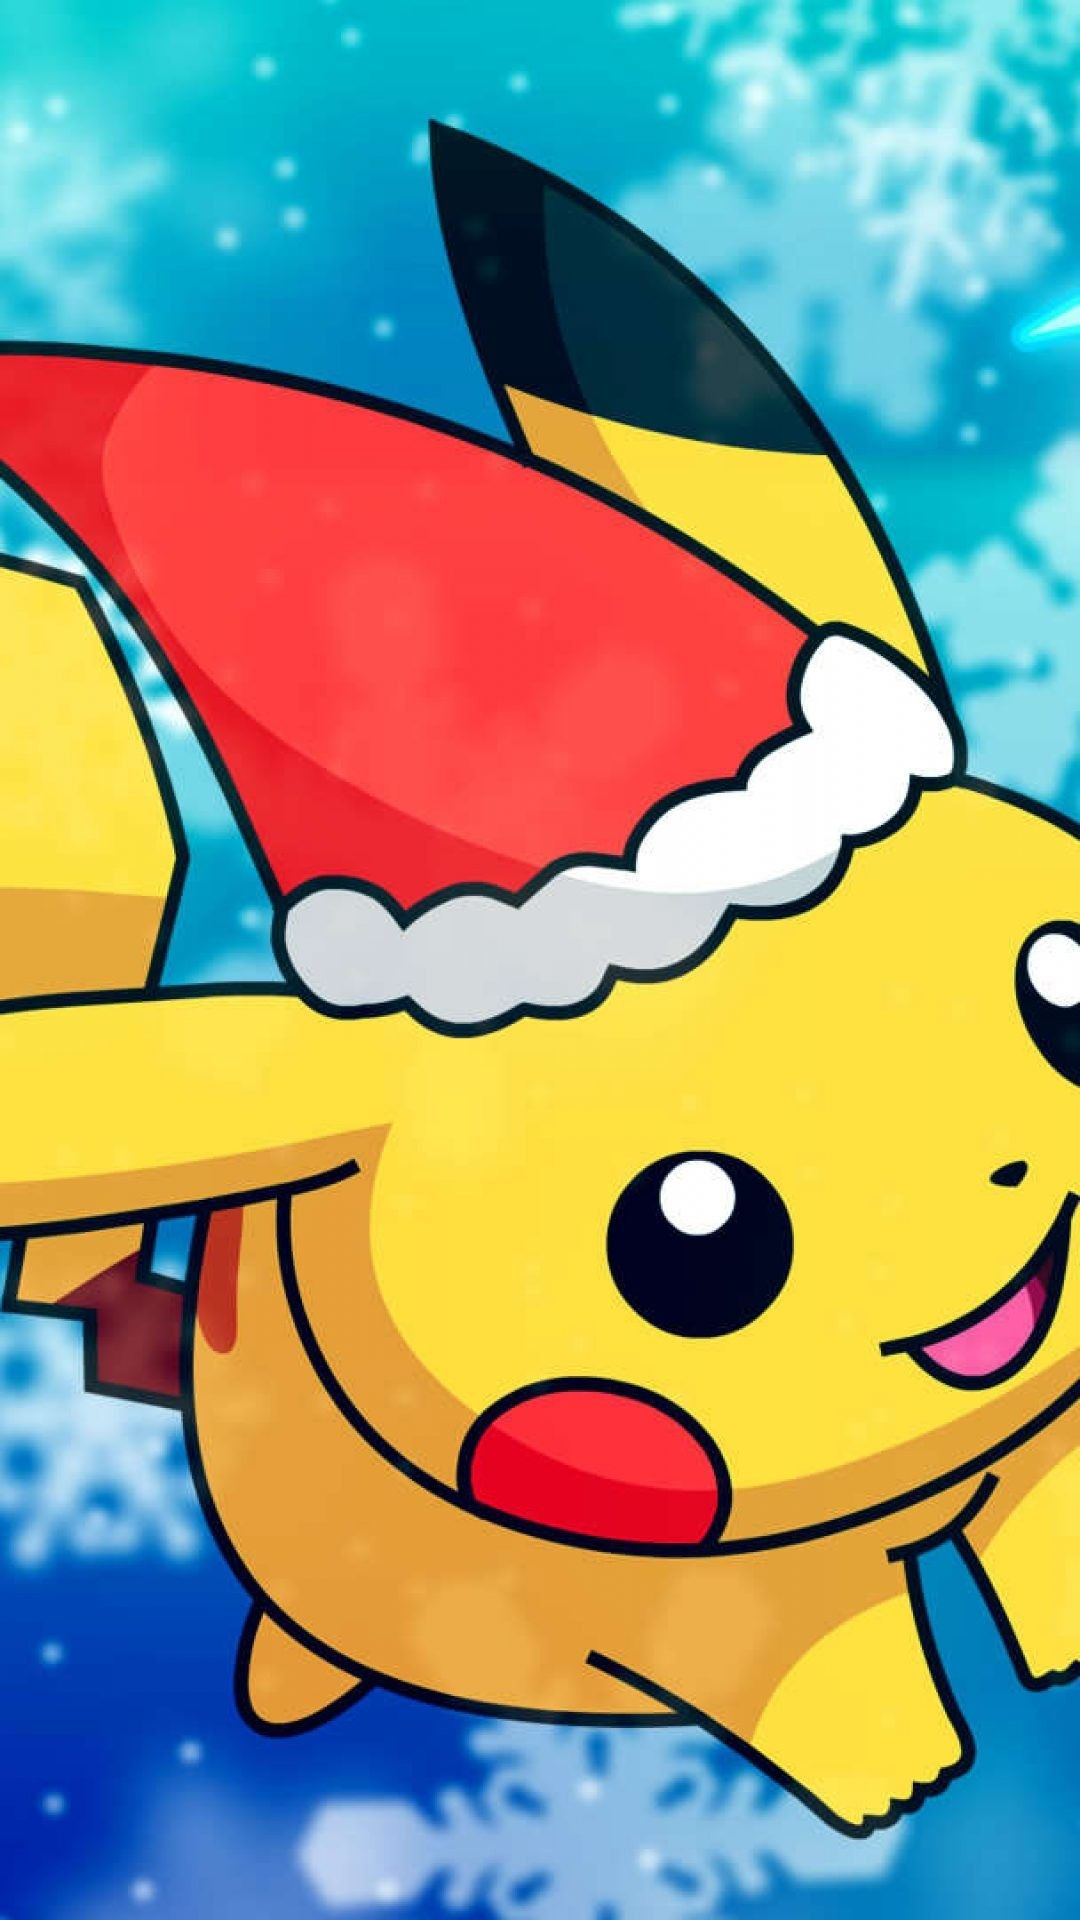 Cute Bow Wallpaper For Iphone Pikachu Christmas Wallpapers Top Free Pikachu Christmas